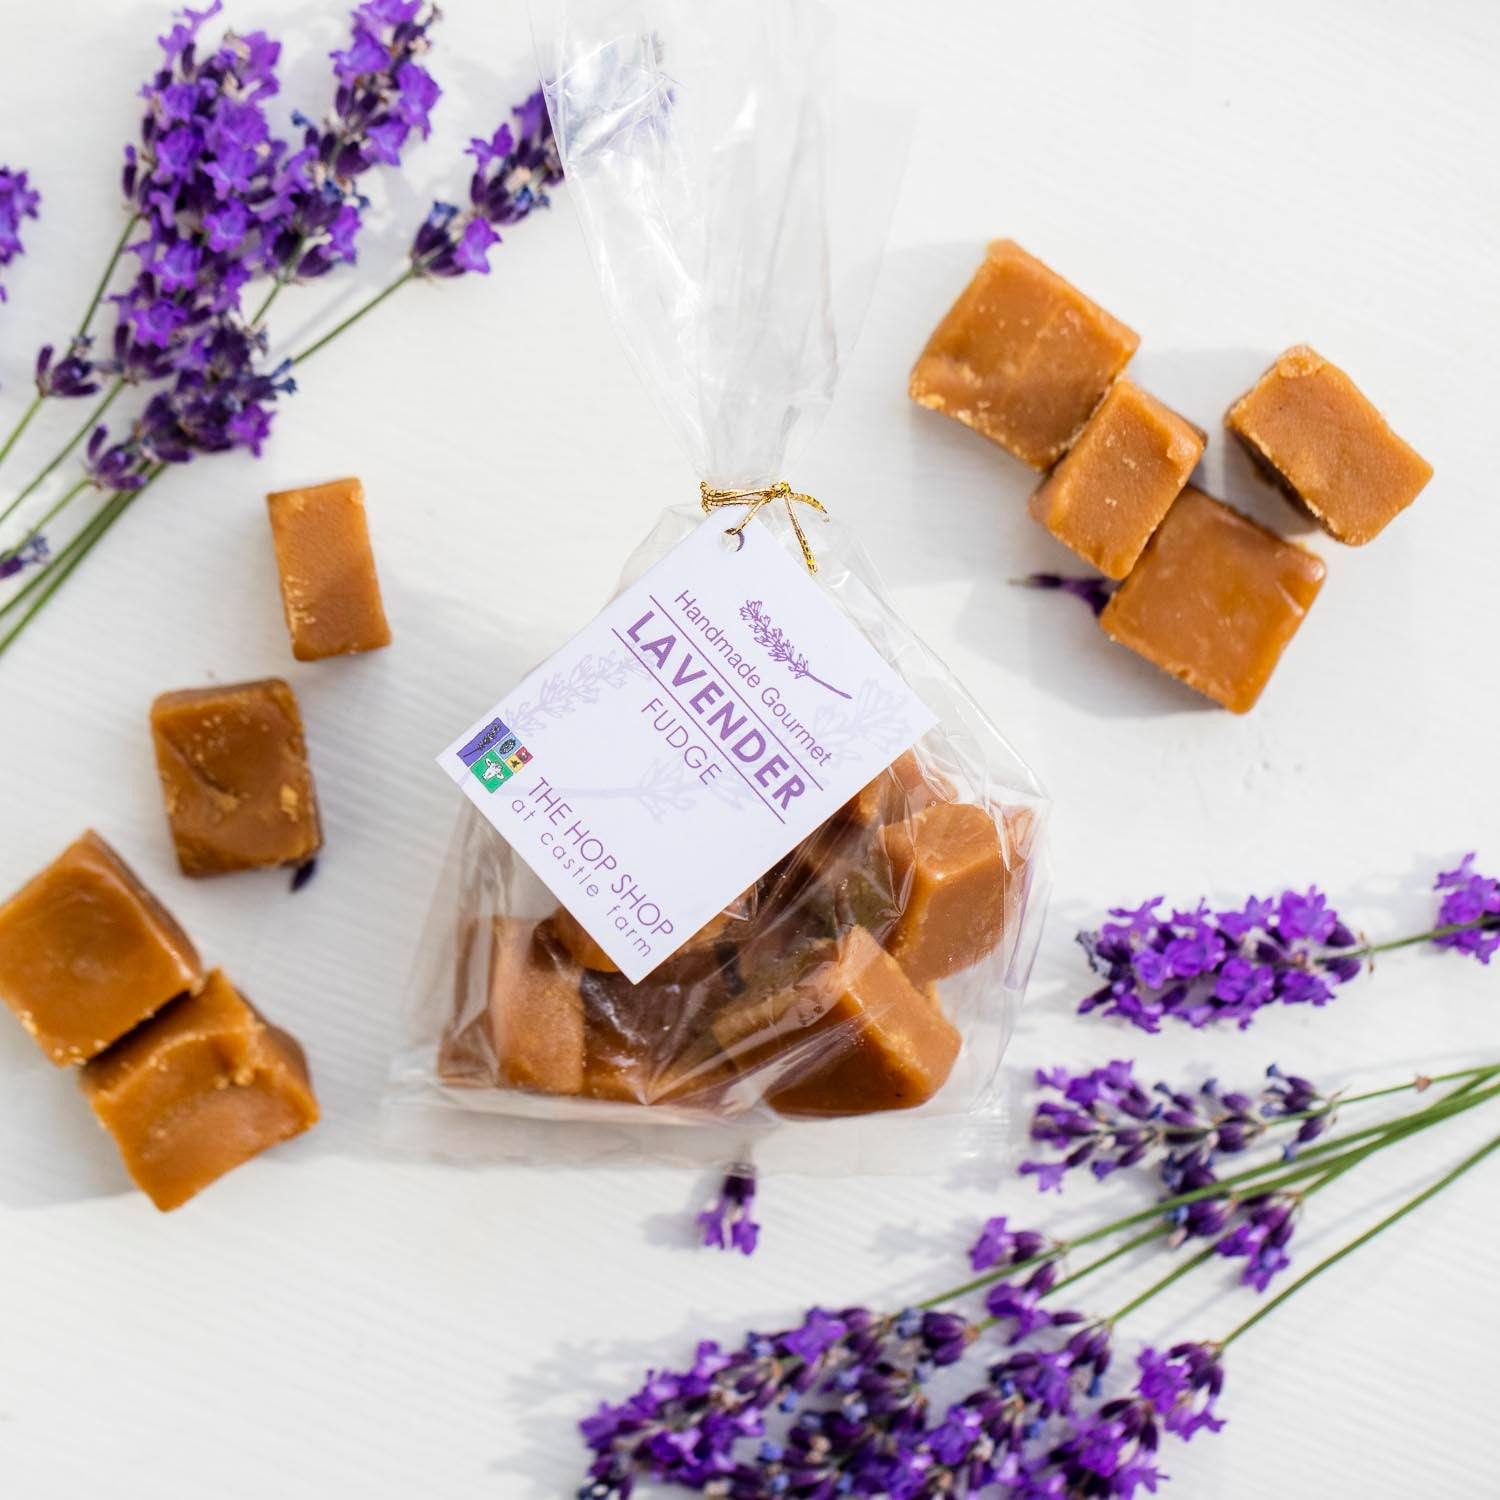 CASTLE FARM LAVENDER FUDGE